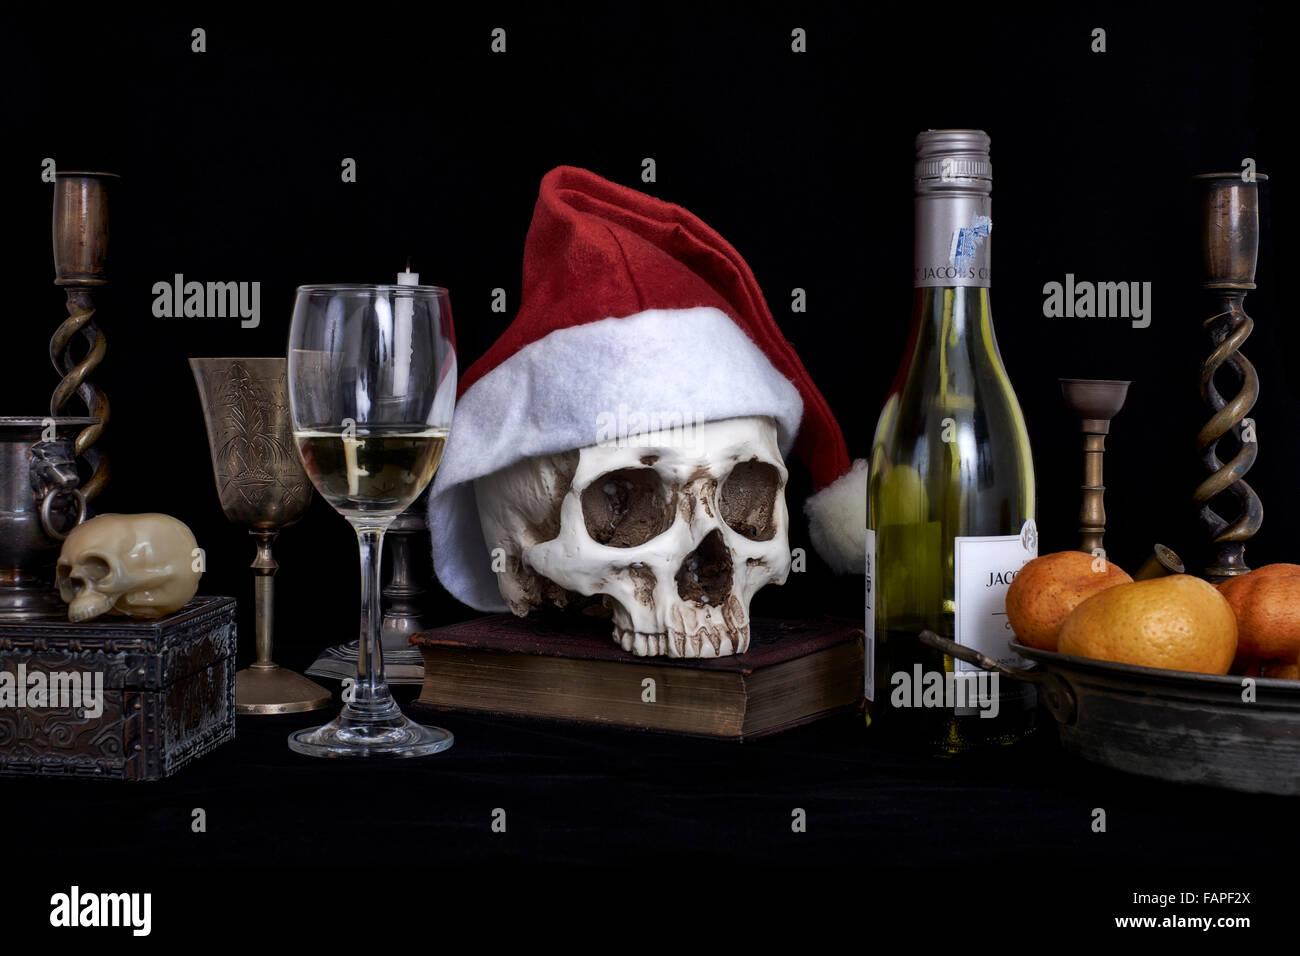 Still life concept of the dangers and potential consequences of drinking and driving in the festive season. - Stock Image